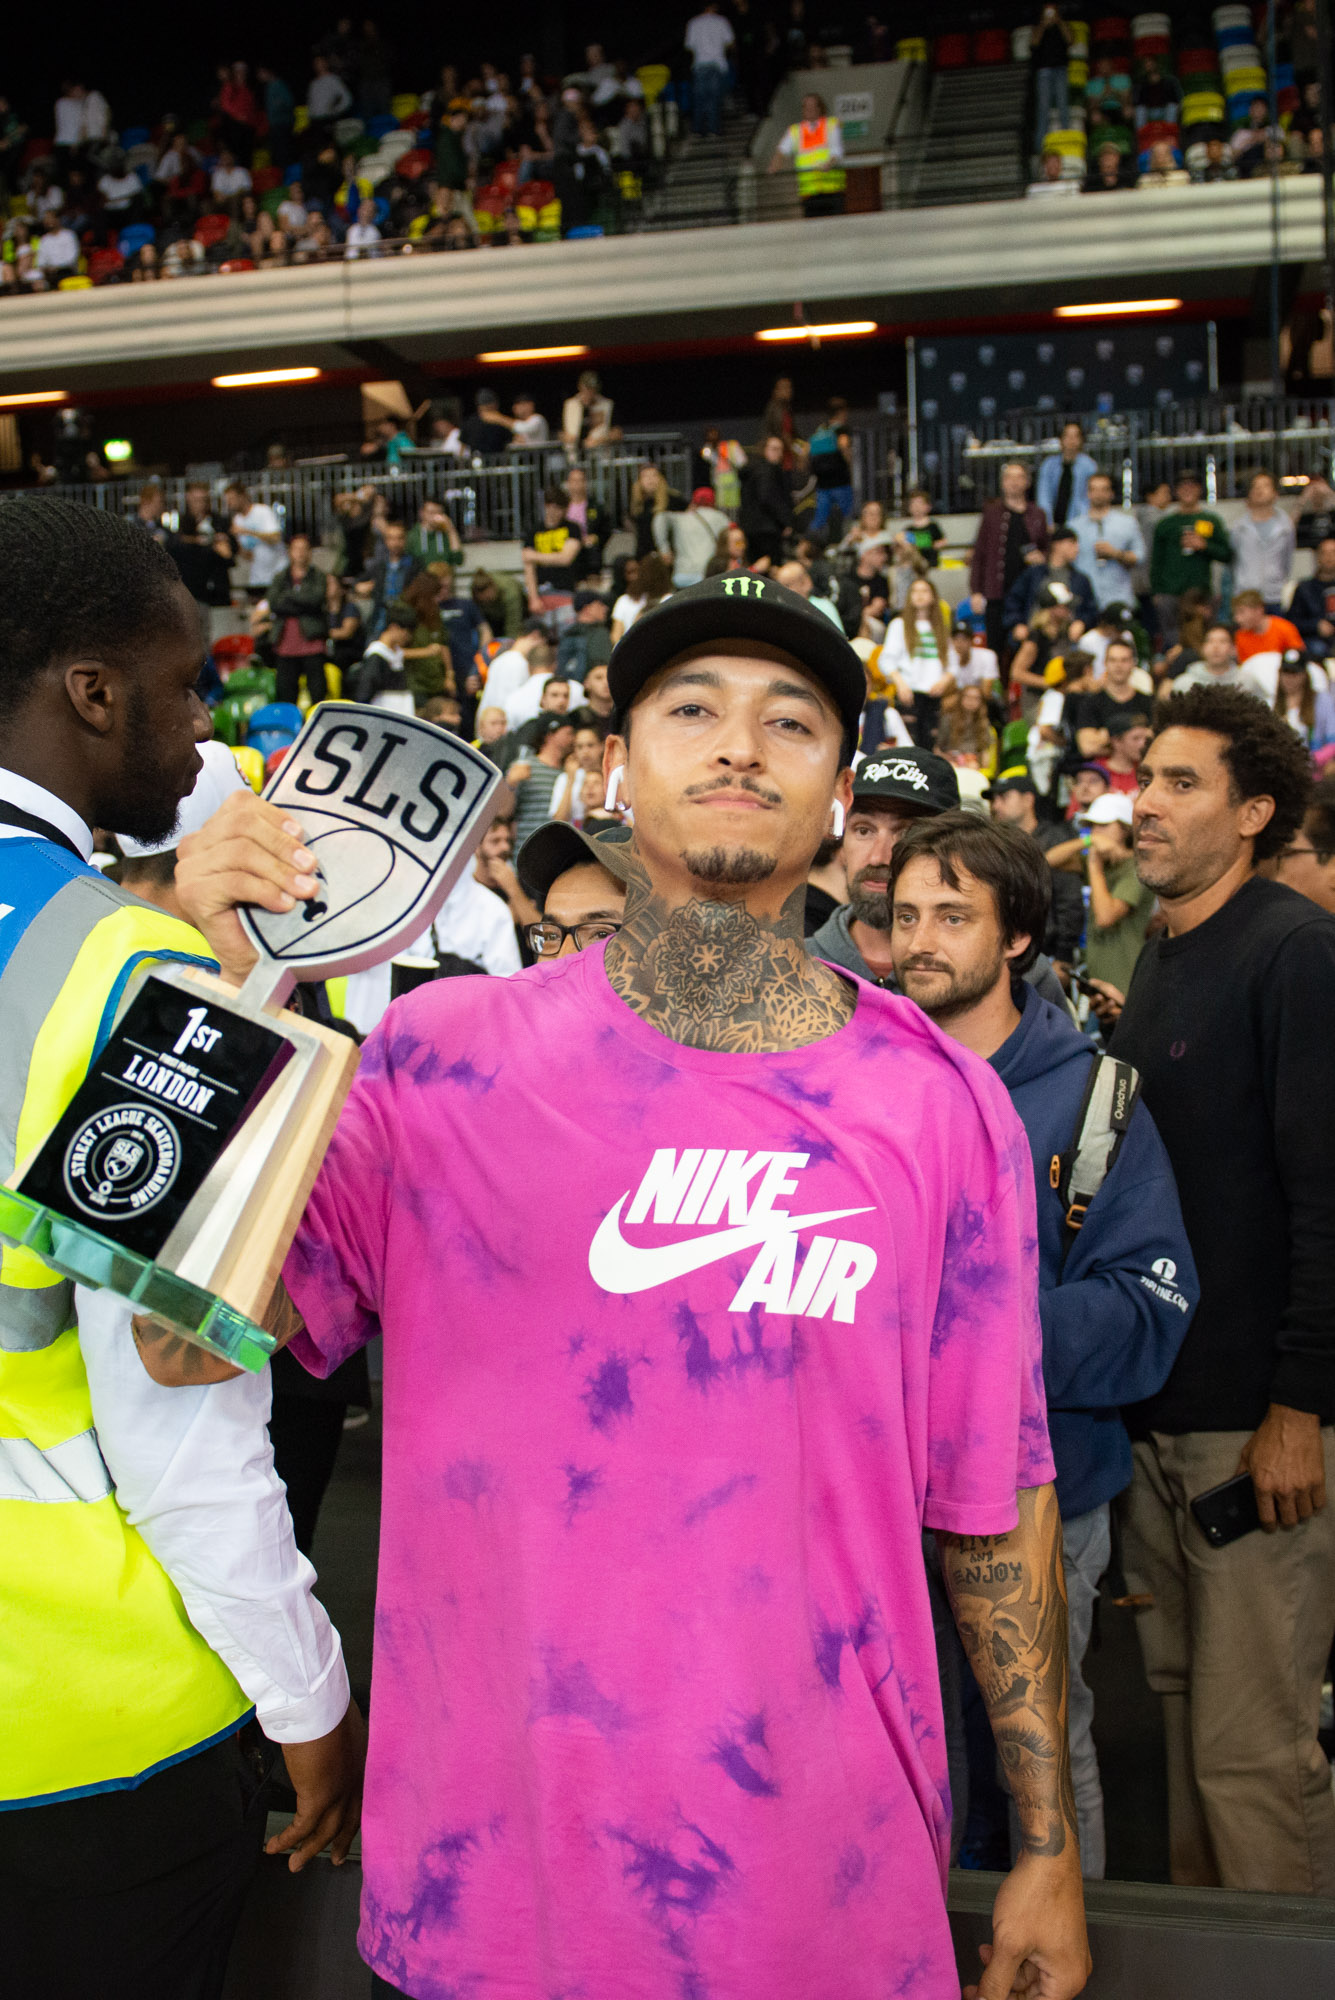 Monster Energy's Nyjah Huston takes 1st Place at SLS World